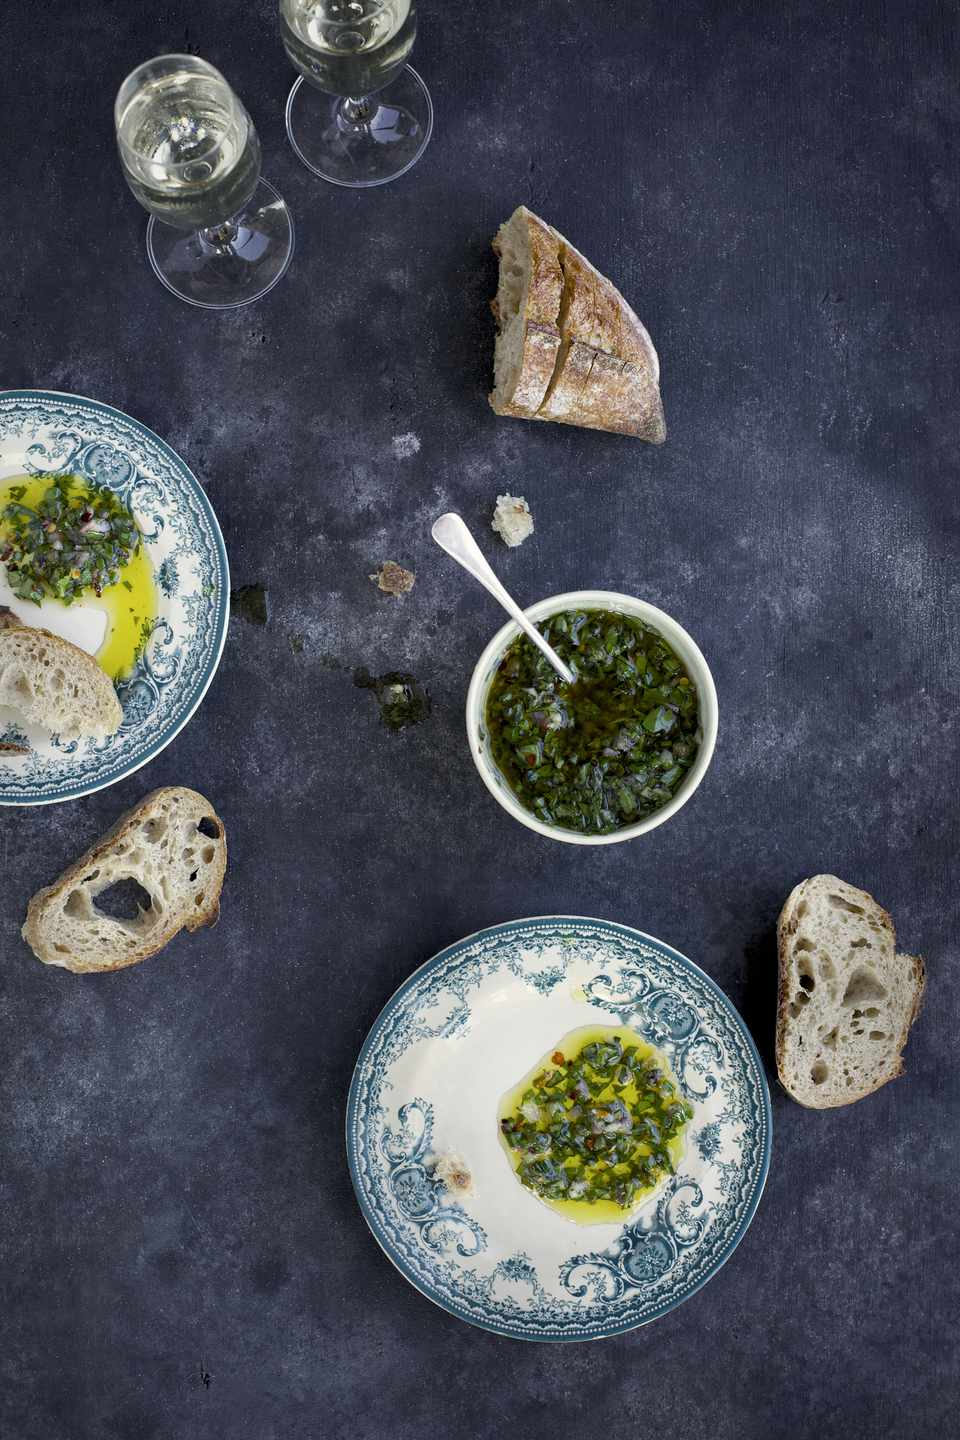 Italian Salsa Verde with bread